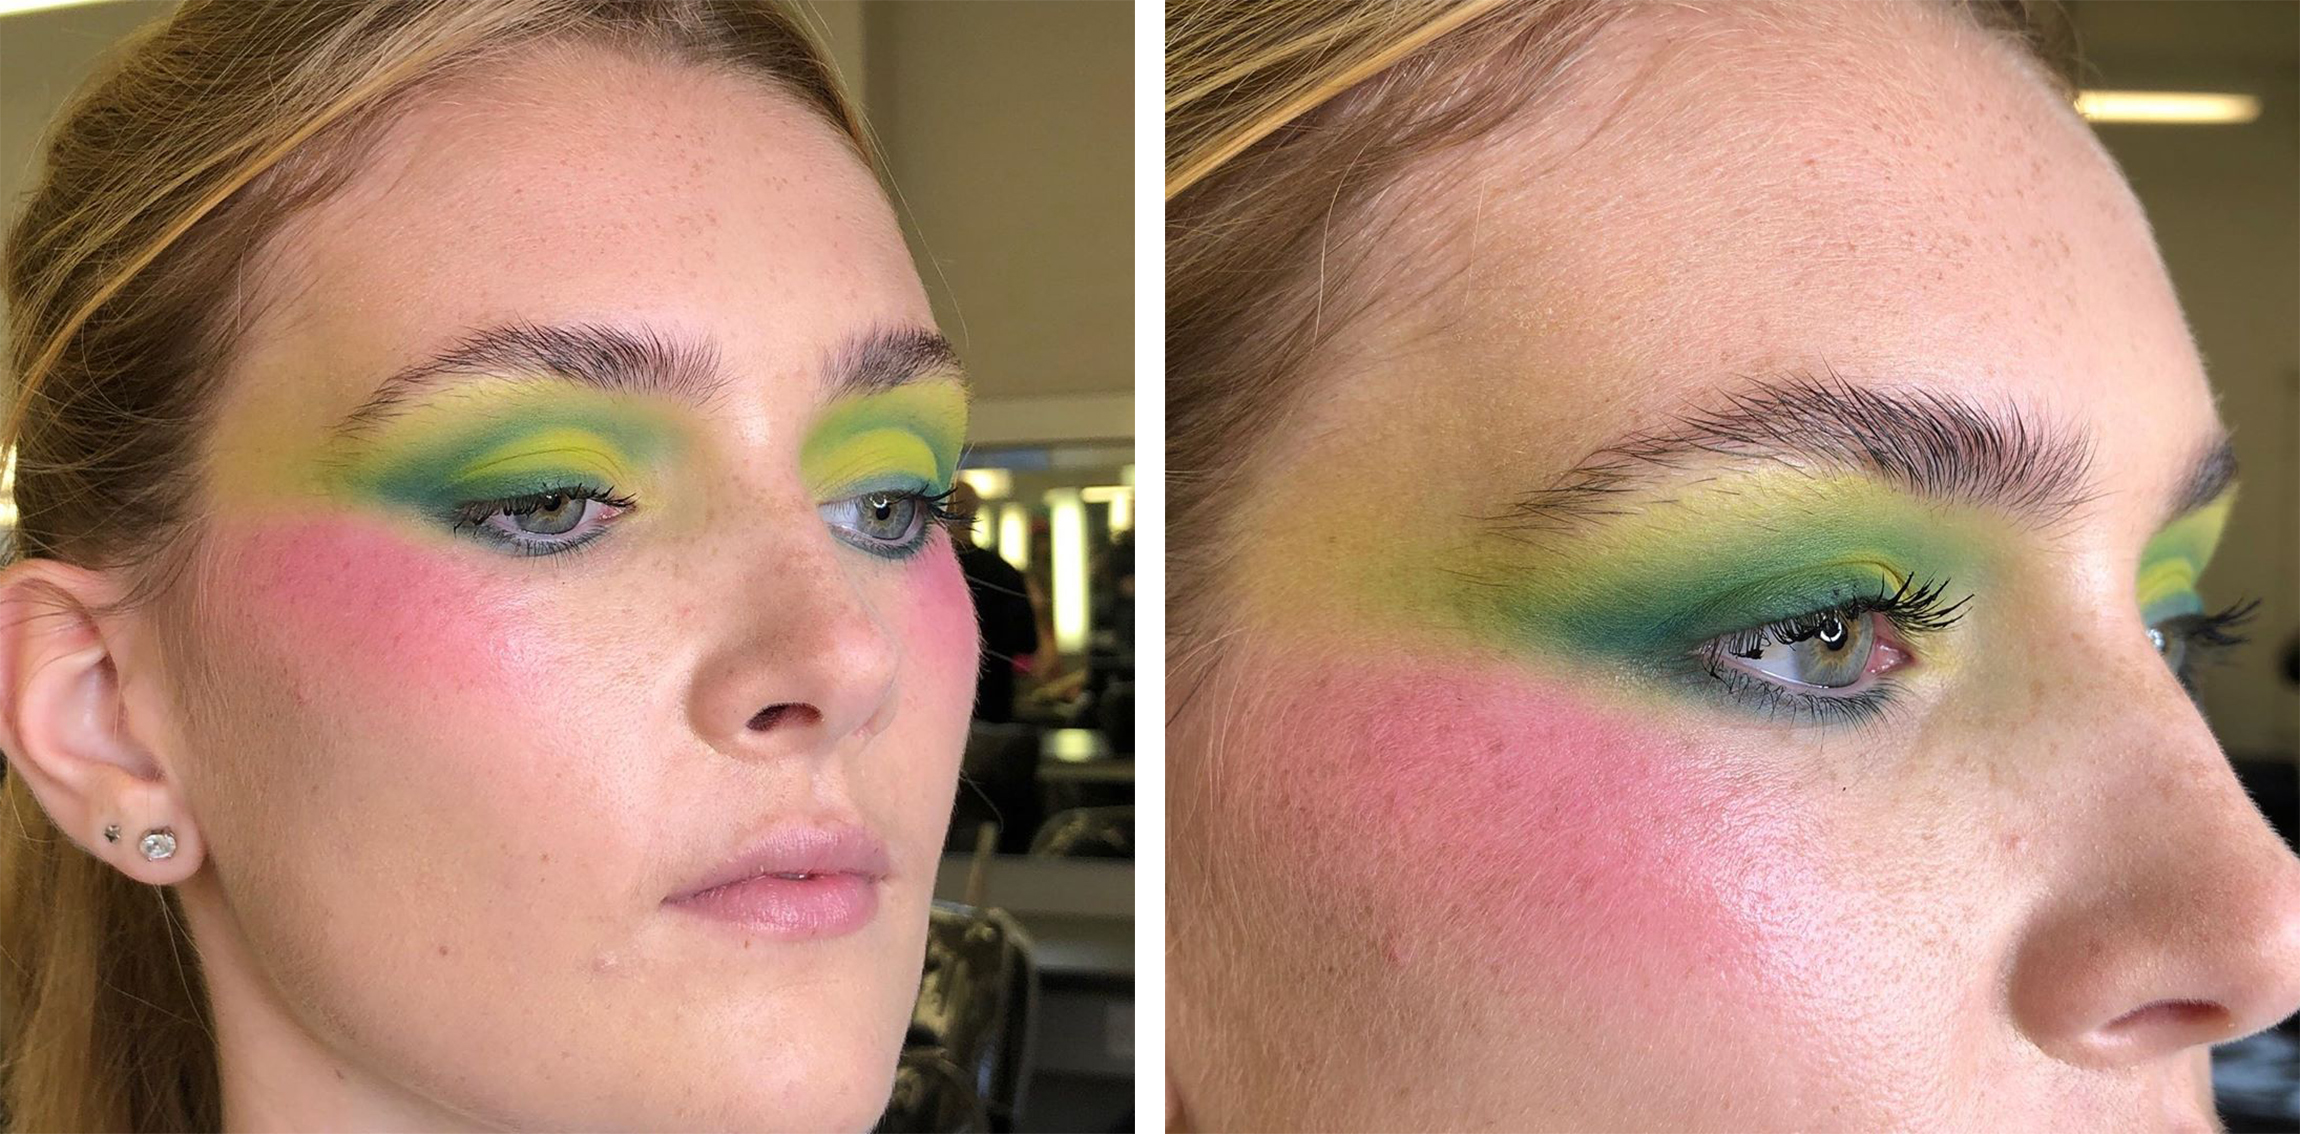 Student with green and yellow striking eyeshadow on